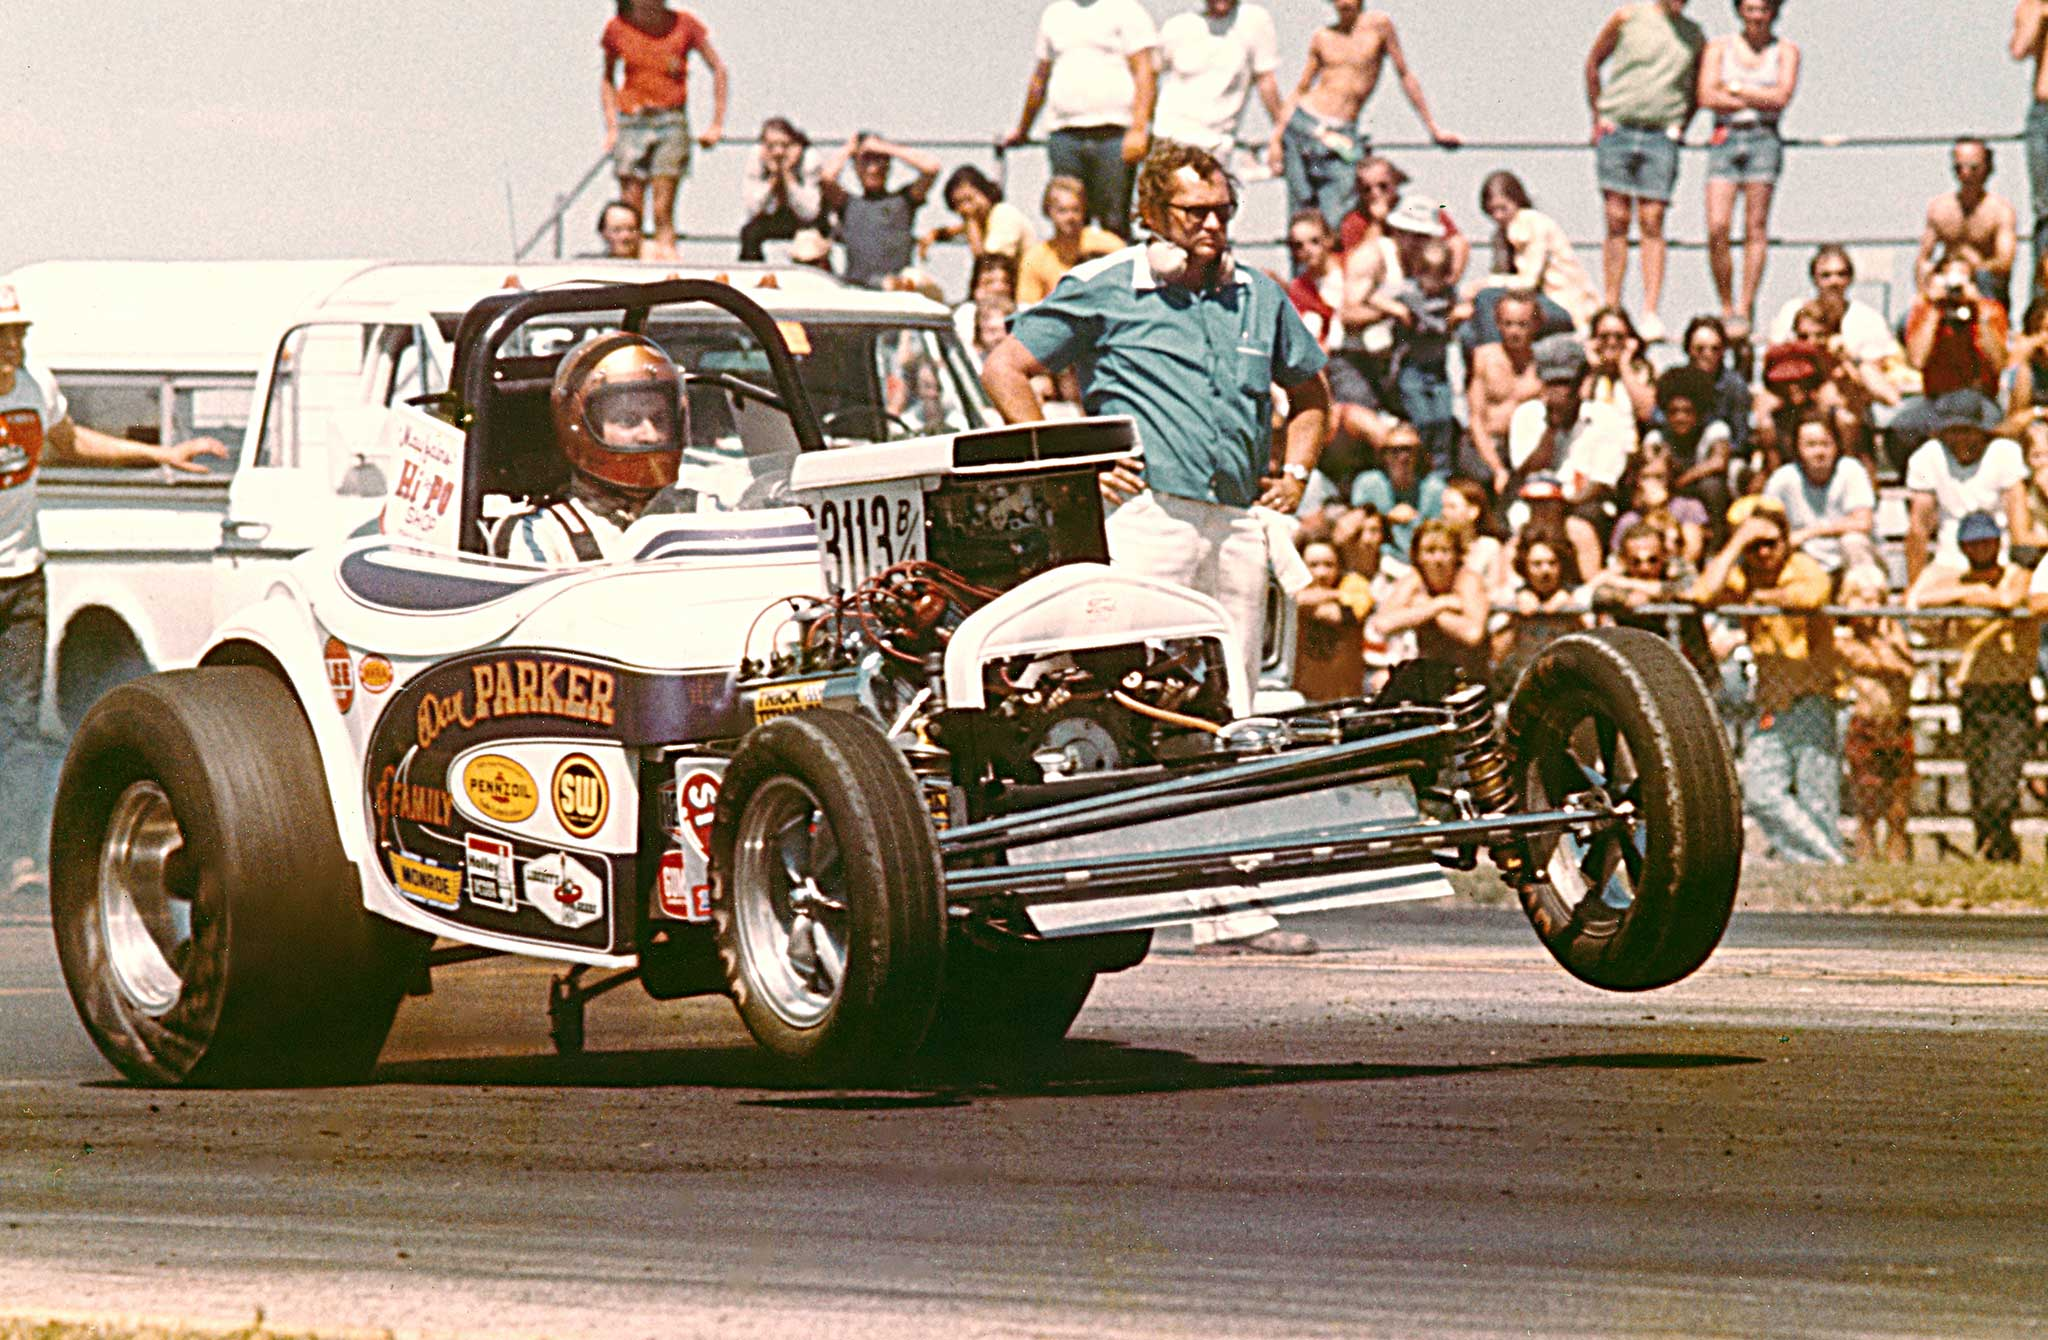 Westland, Michigan's Dan Parker bought this outdated Logghe Funny Car chassis for a dollar-store price and then repurposed it as a record-holding B/Altered. Dan's homebuilt, injected 426 Hemi had plenty of power and was a force in NHRA Division 3 Comp Eliminator in the early 1970s.